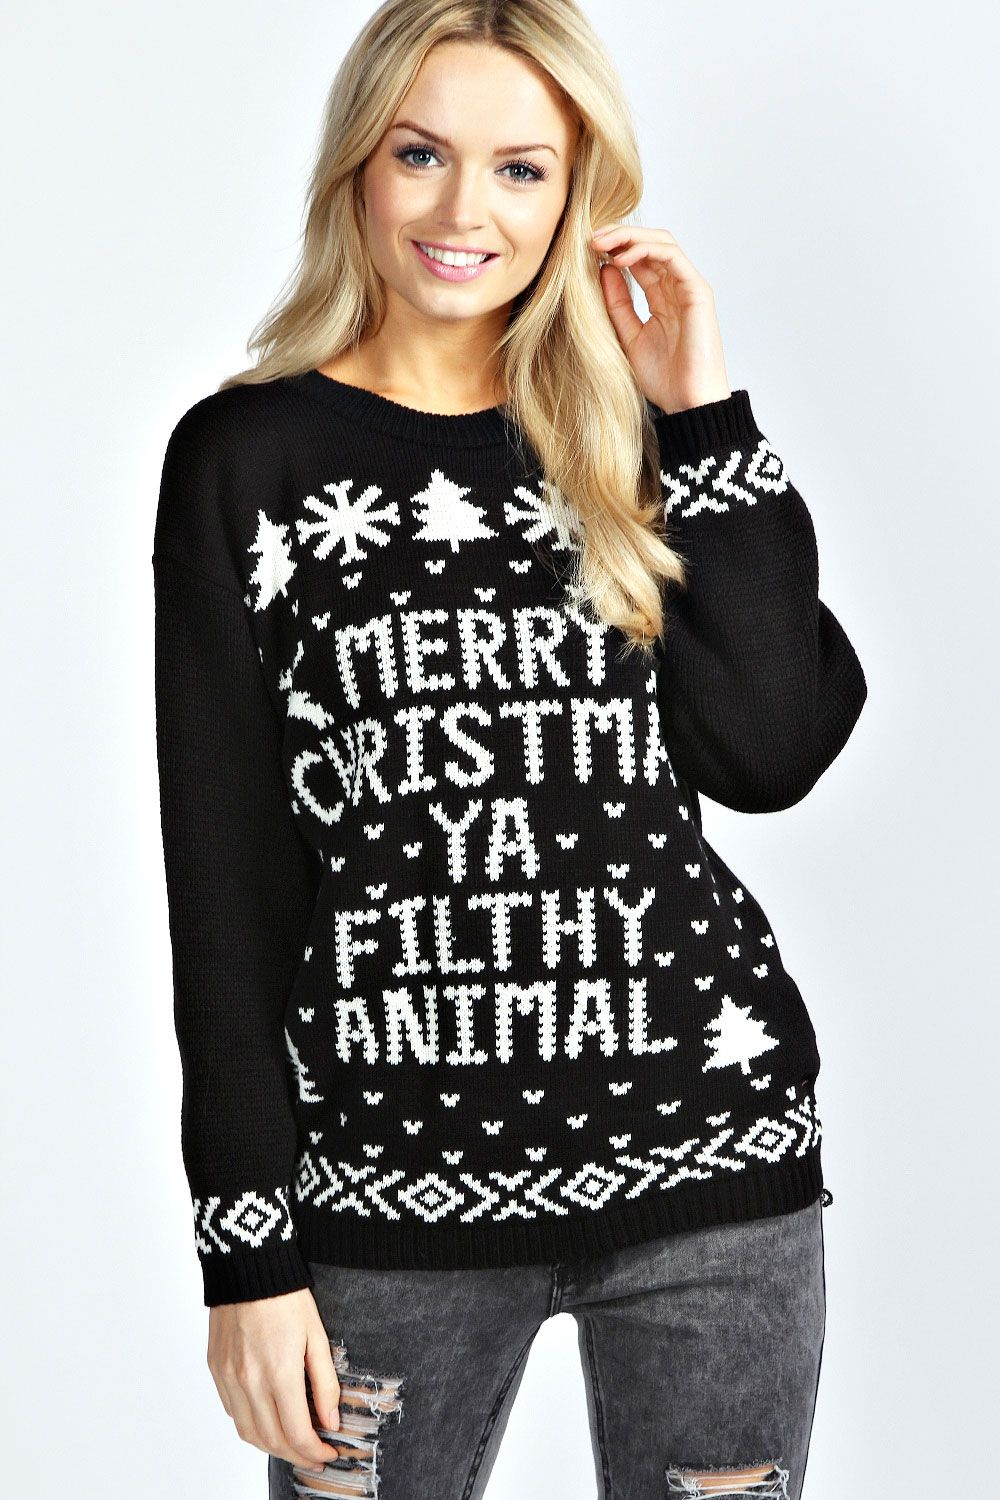 One day I will have Christmas in a cold place and wear